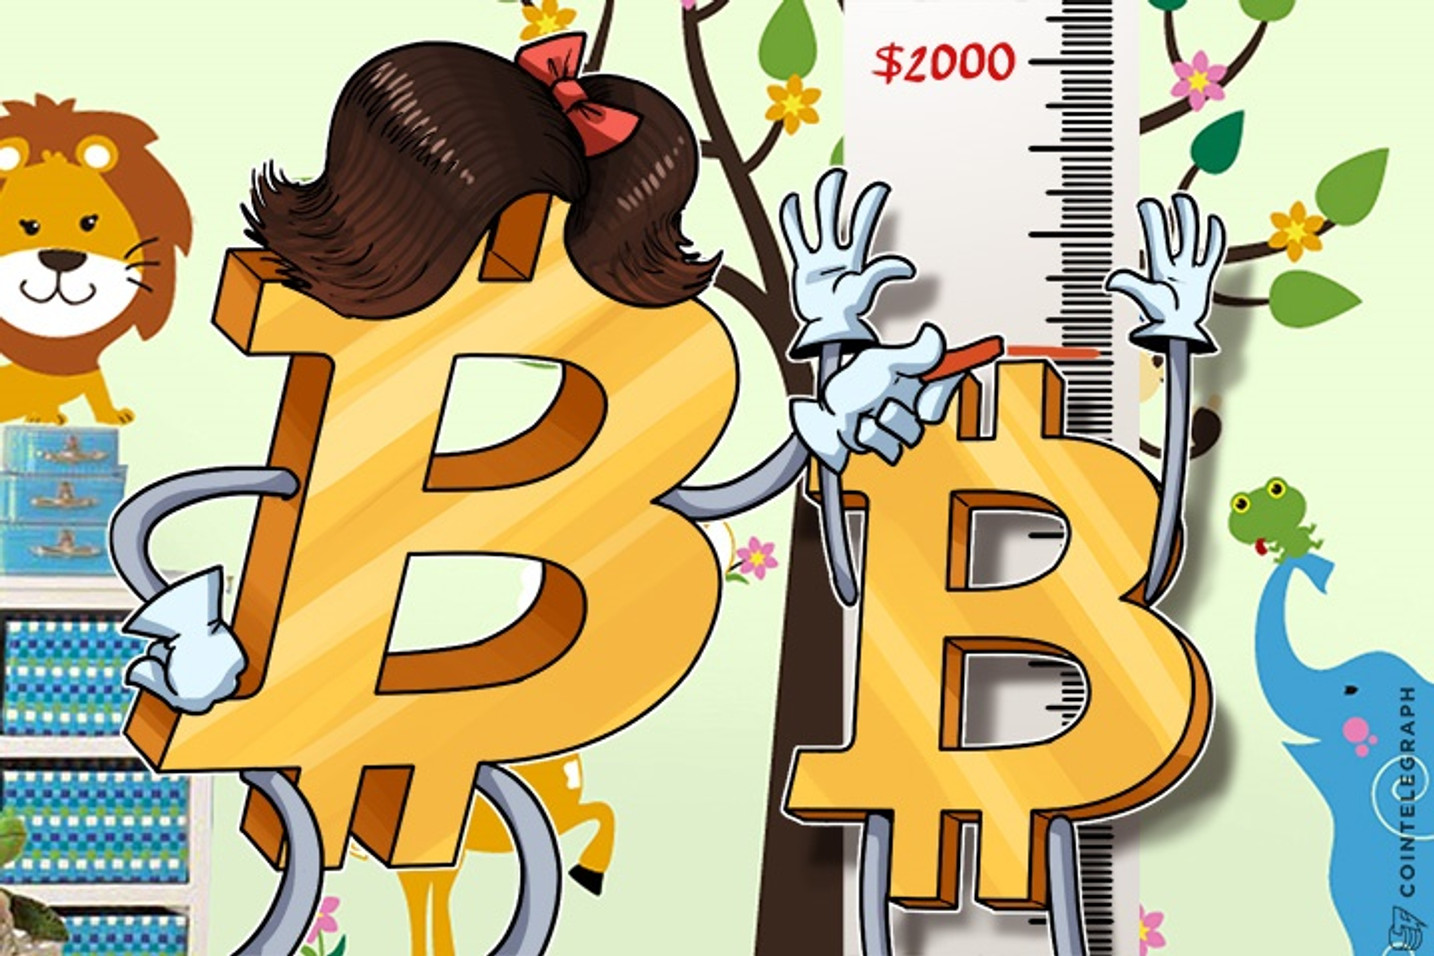 Bitcoin Price Between $2,000 and $3,000 by End Of 2017: Technical Analysts